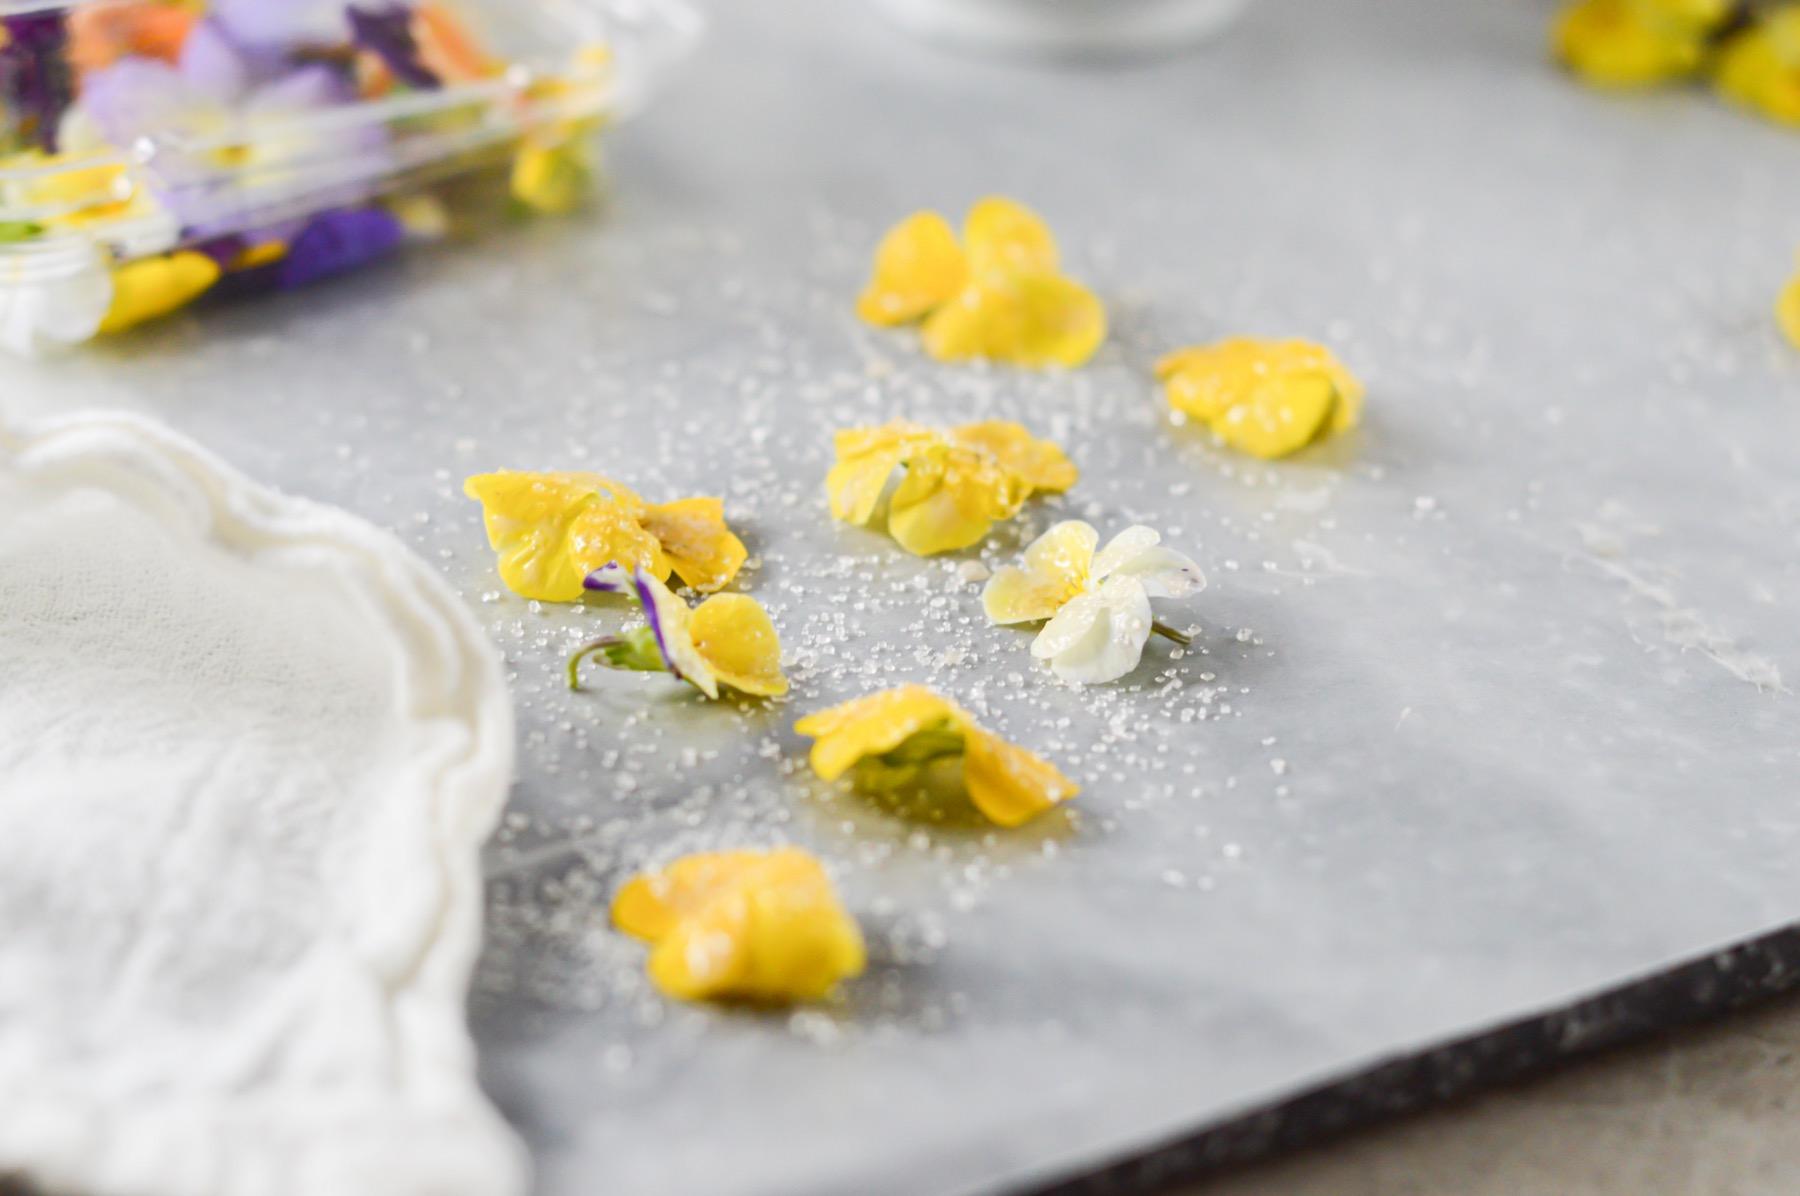 drying candied flowers on parchment